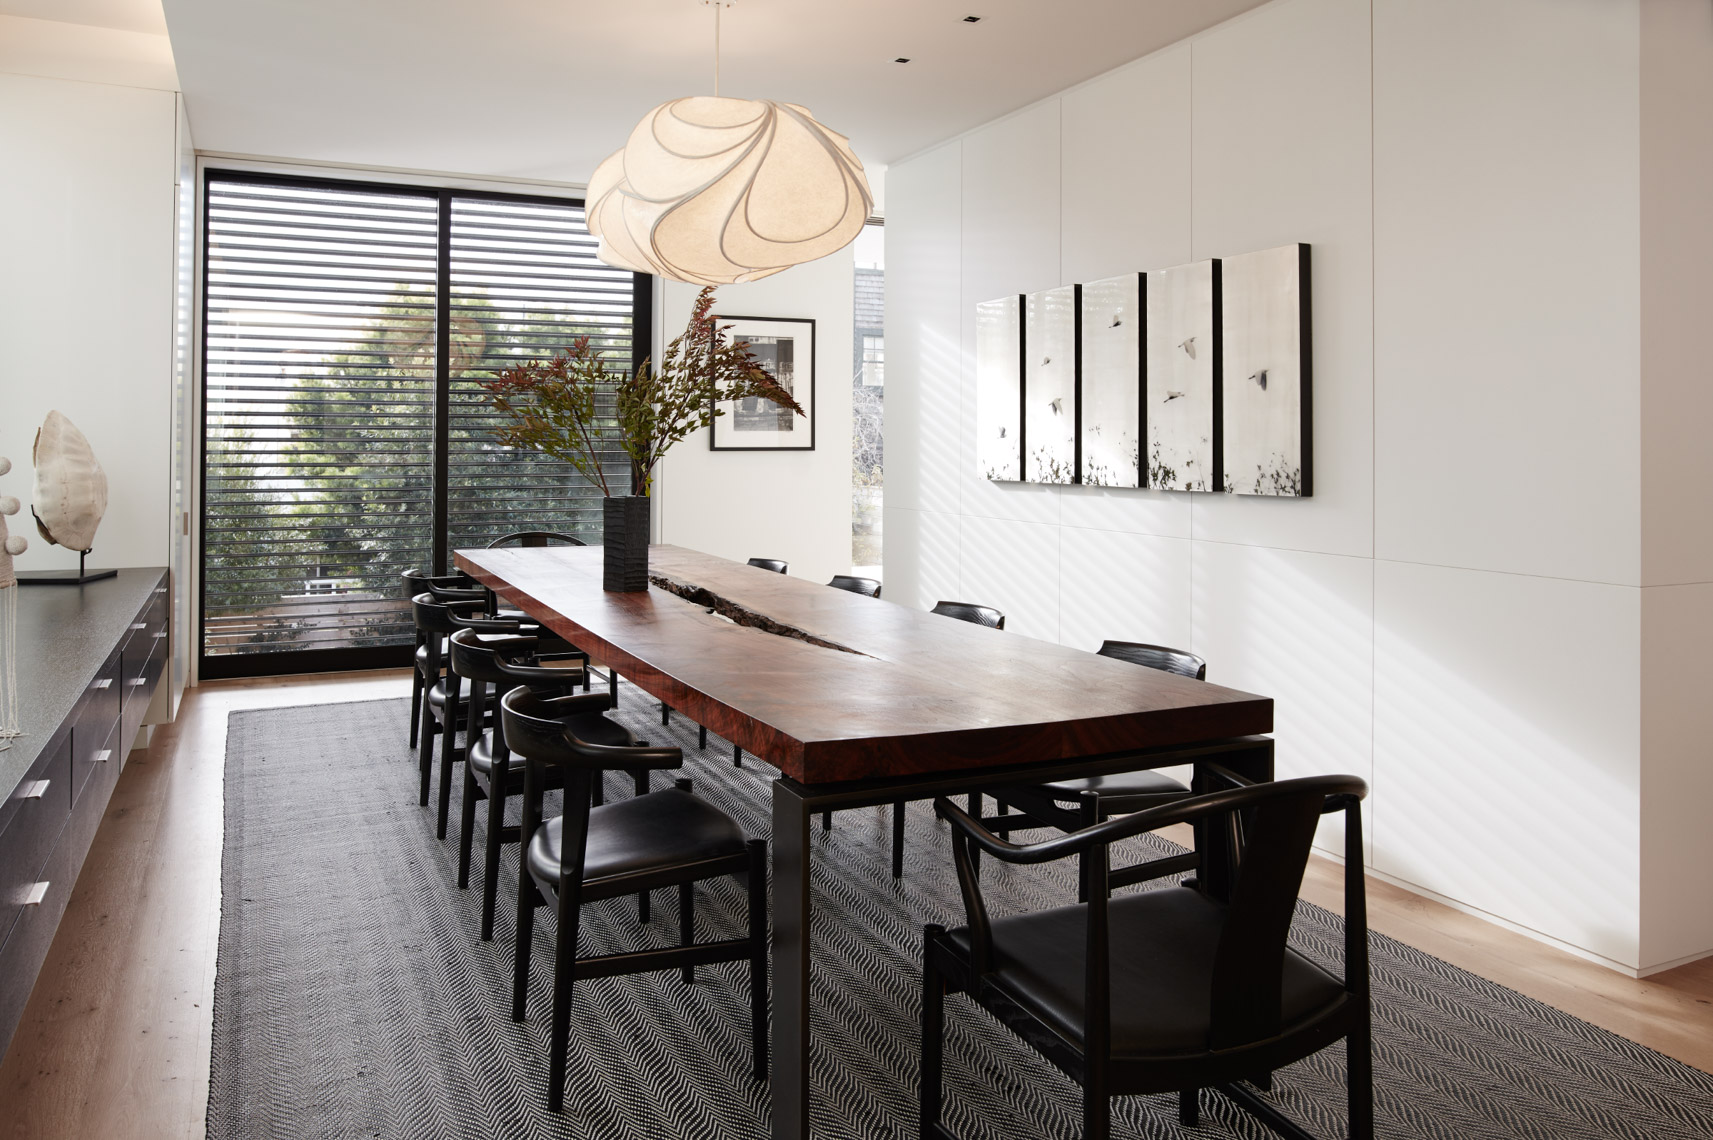 wooden dining room table with black chairs and ceiling lamp